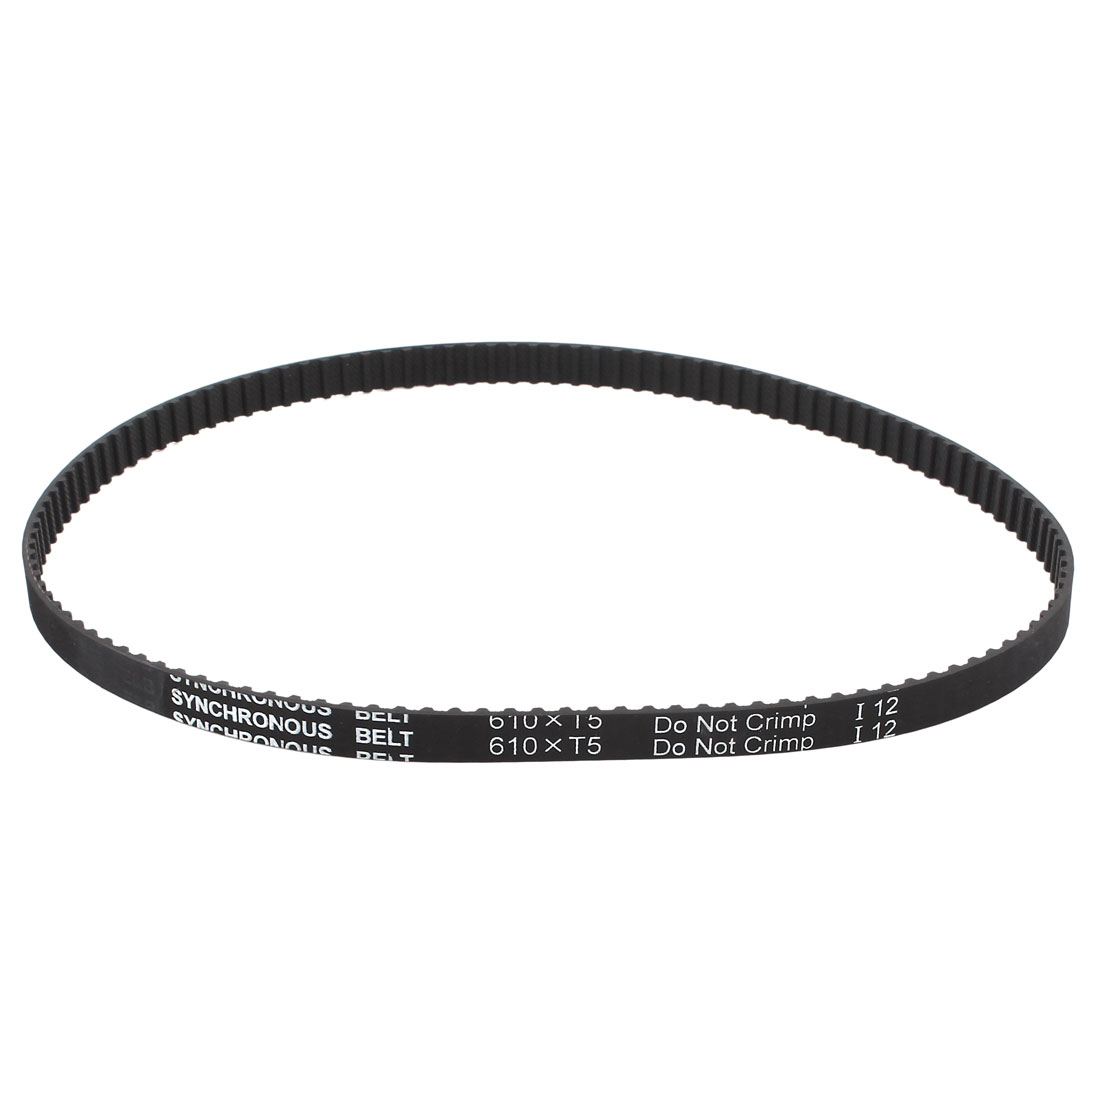 T5x610 10mm Width 5mm Pitch 122 Teeth CNC Timing Belt for Stepper Motor